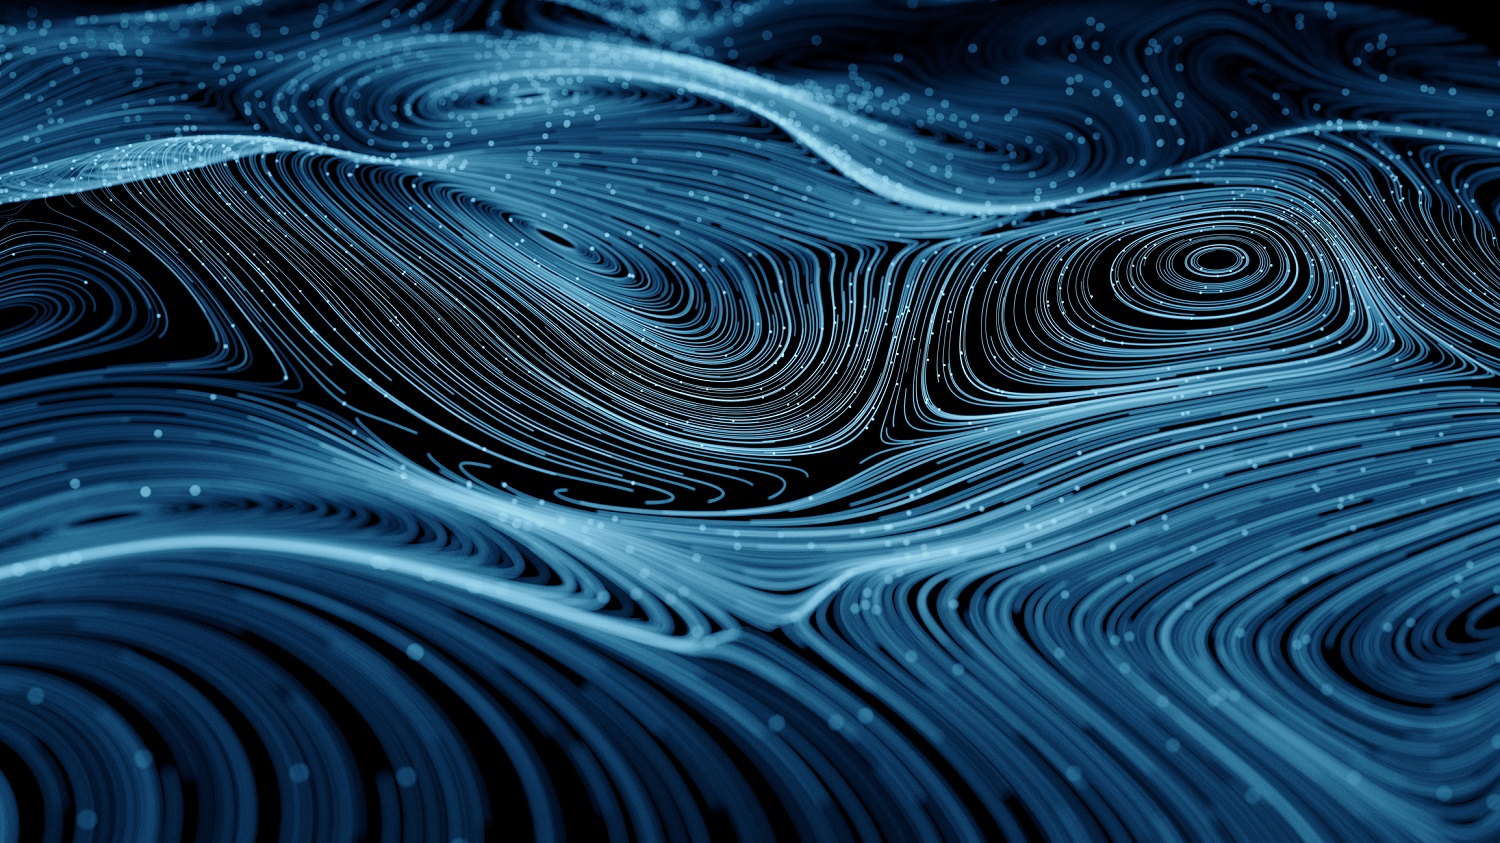 a collection of round, geometric lines blue lines made to look like abstract ocean waves but closely resembles a tomographic map